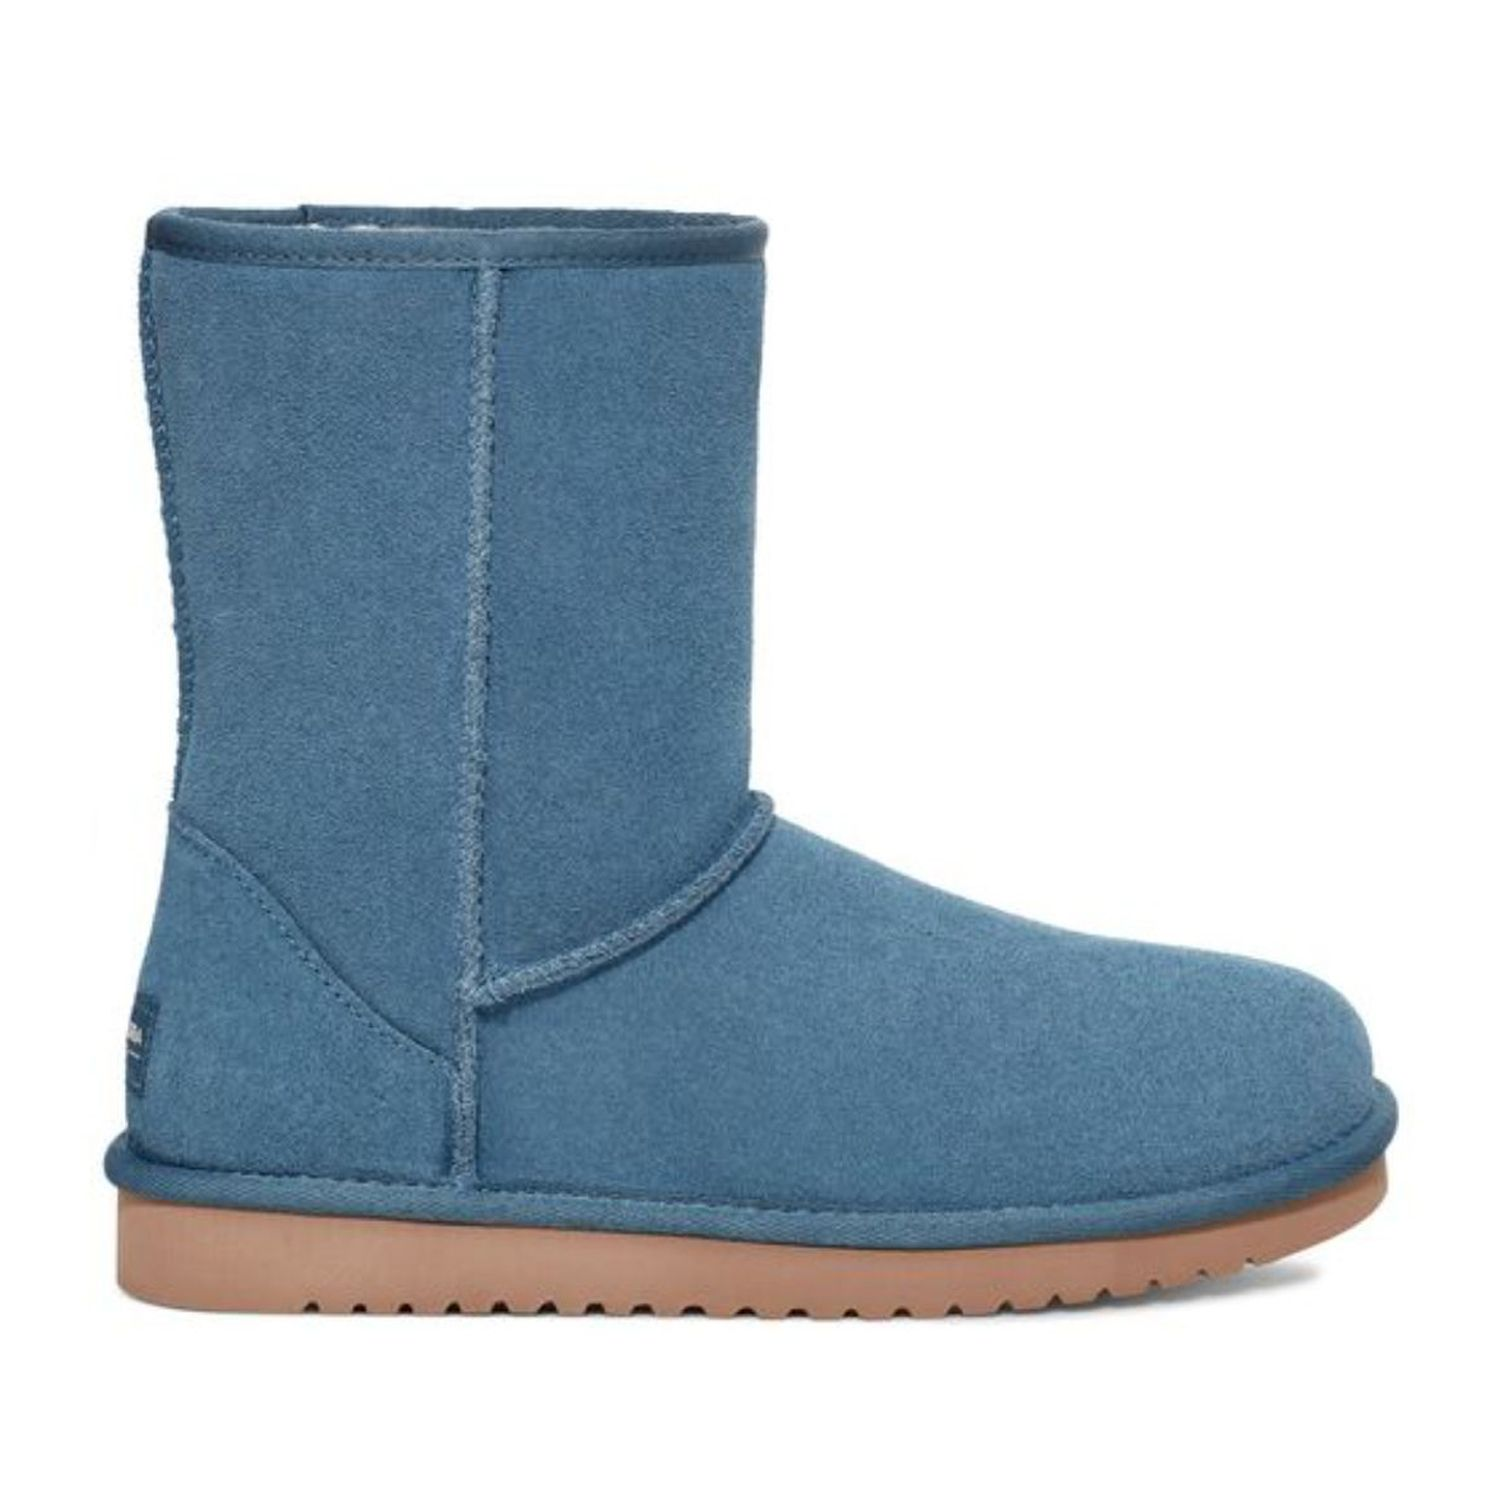 da6ae2a4e96e Womens Koolaburra by UGG Boots - Shoes